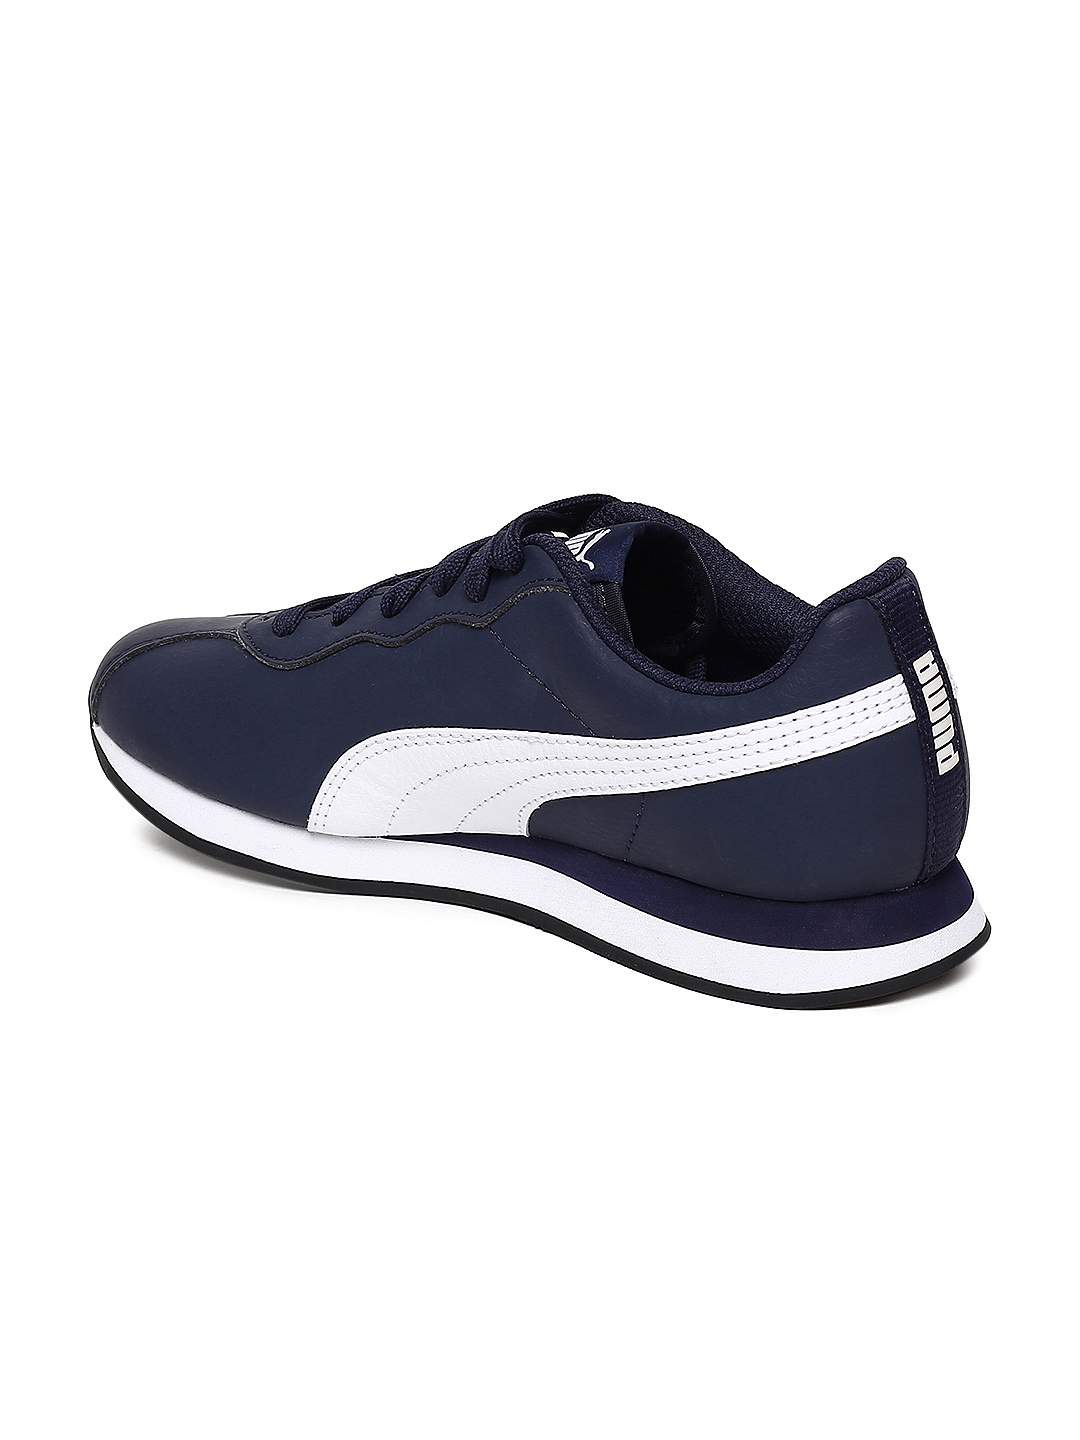 6d8139ad92b Buy Puma Kids Navy Blue Turin II Jr Leather Sneakers - Casual Shoes ...